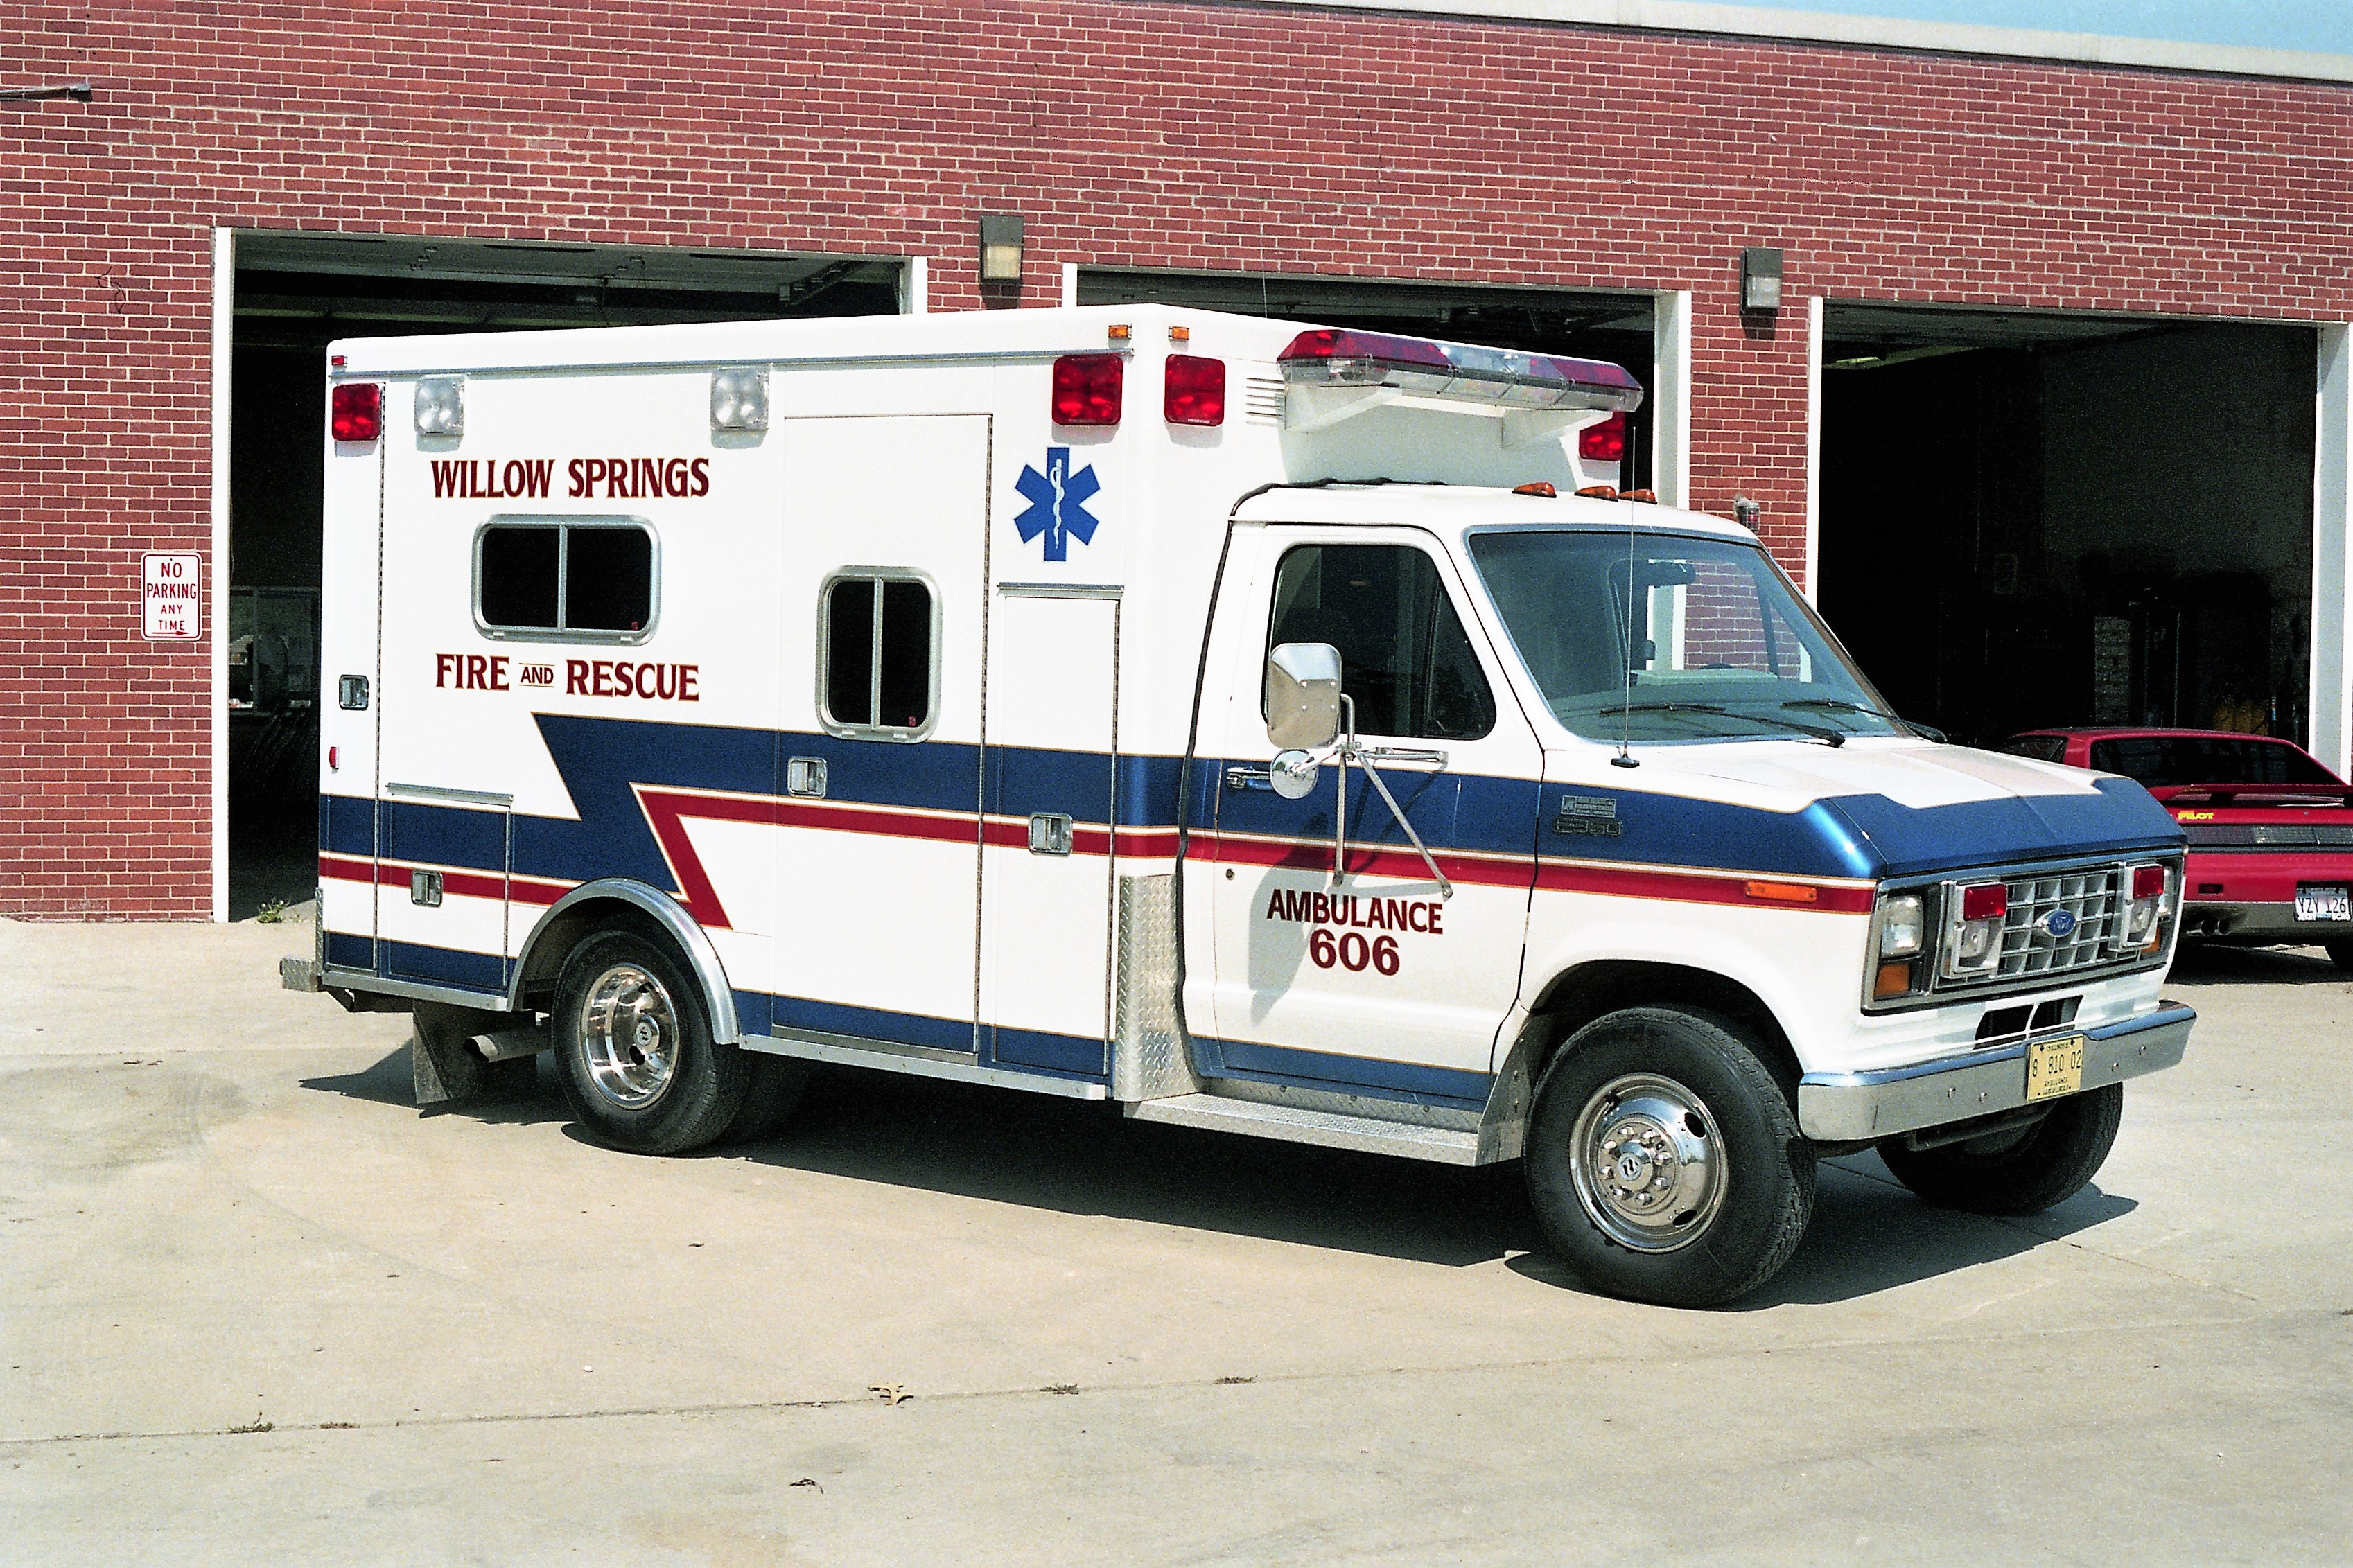 WILLOW SPRINGS AMBULANCE 606 1991 FORD E350 - ROAD RESCUE